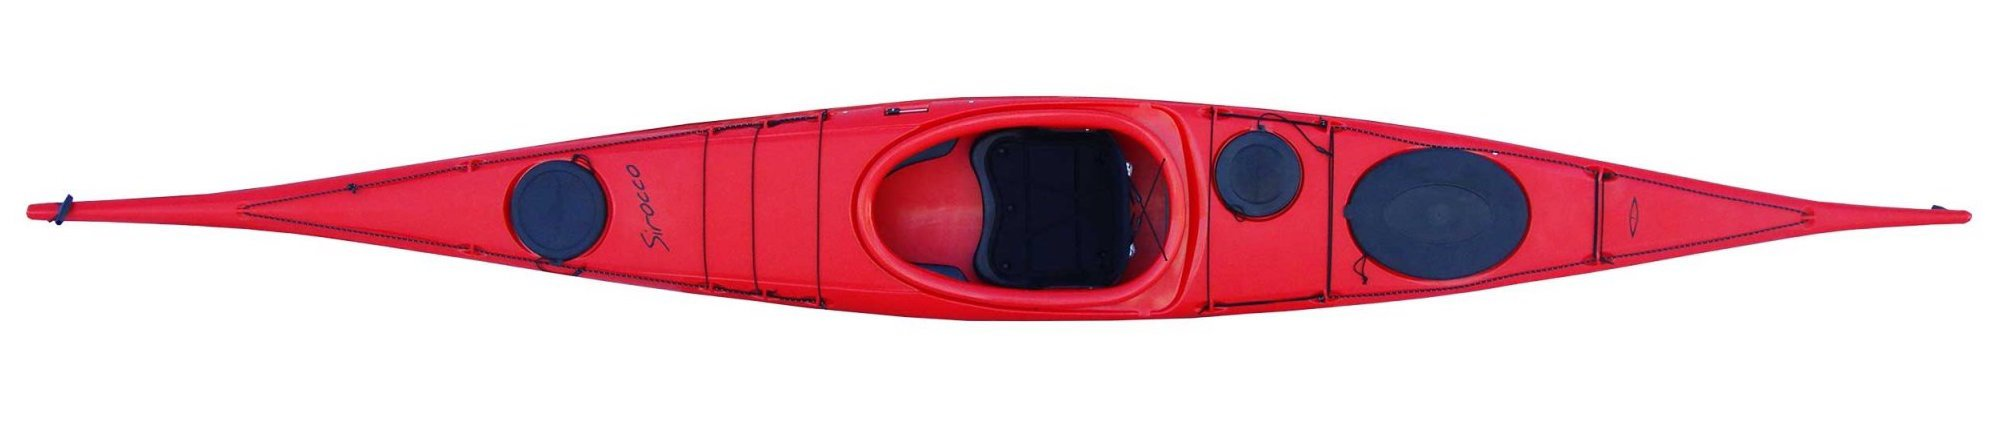 Current Designs Sirocco Kayak - Red